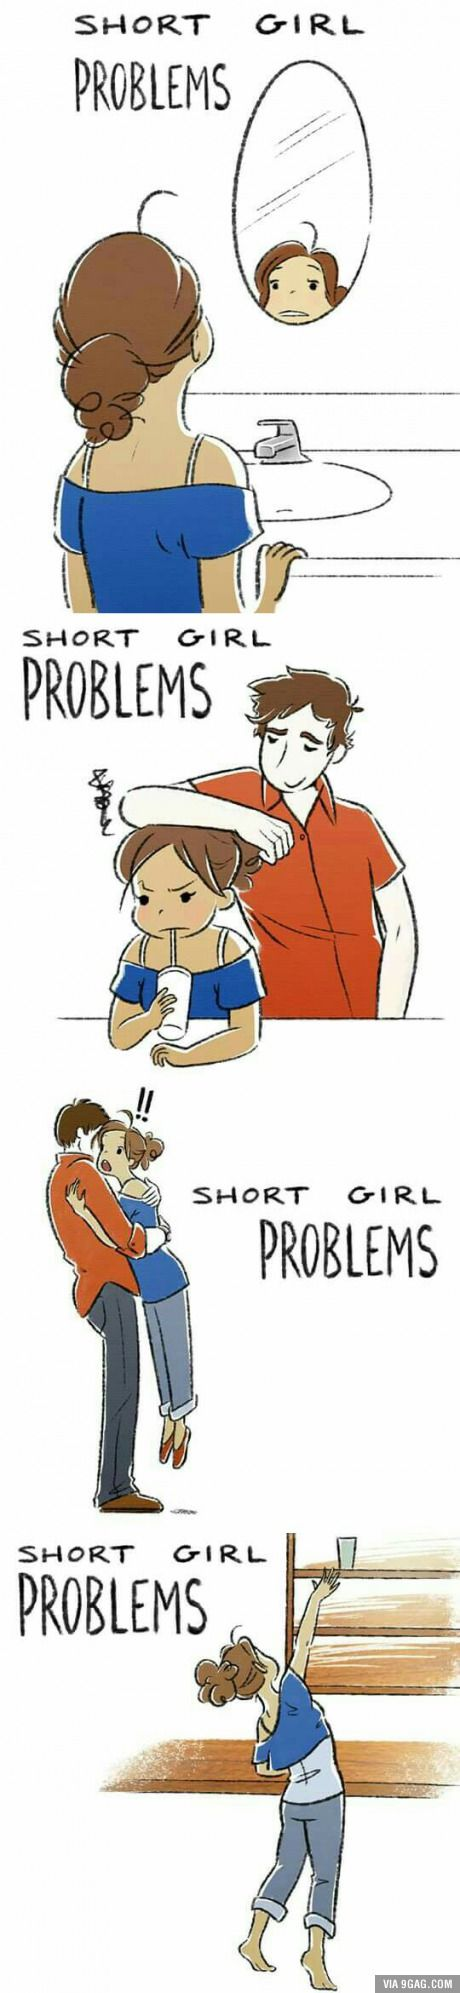 Short girl Problems. It's so true!